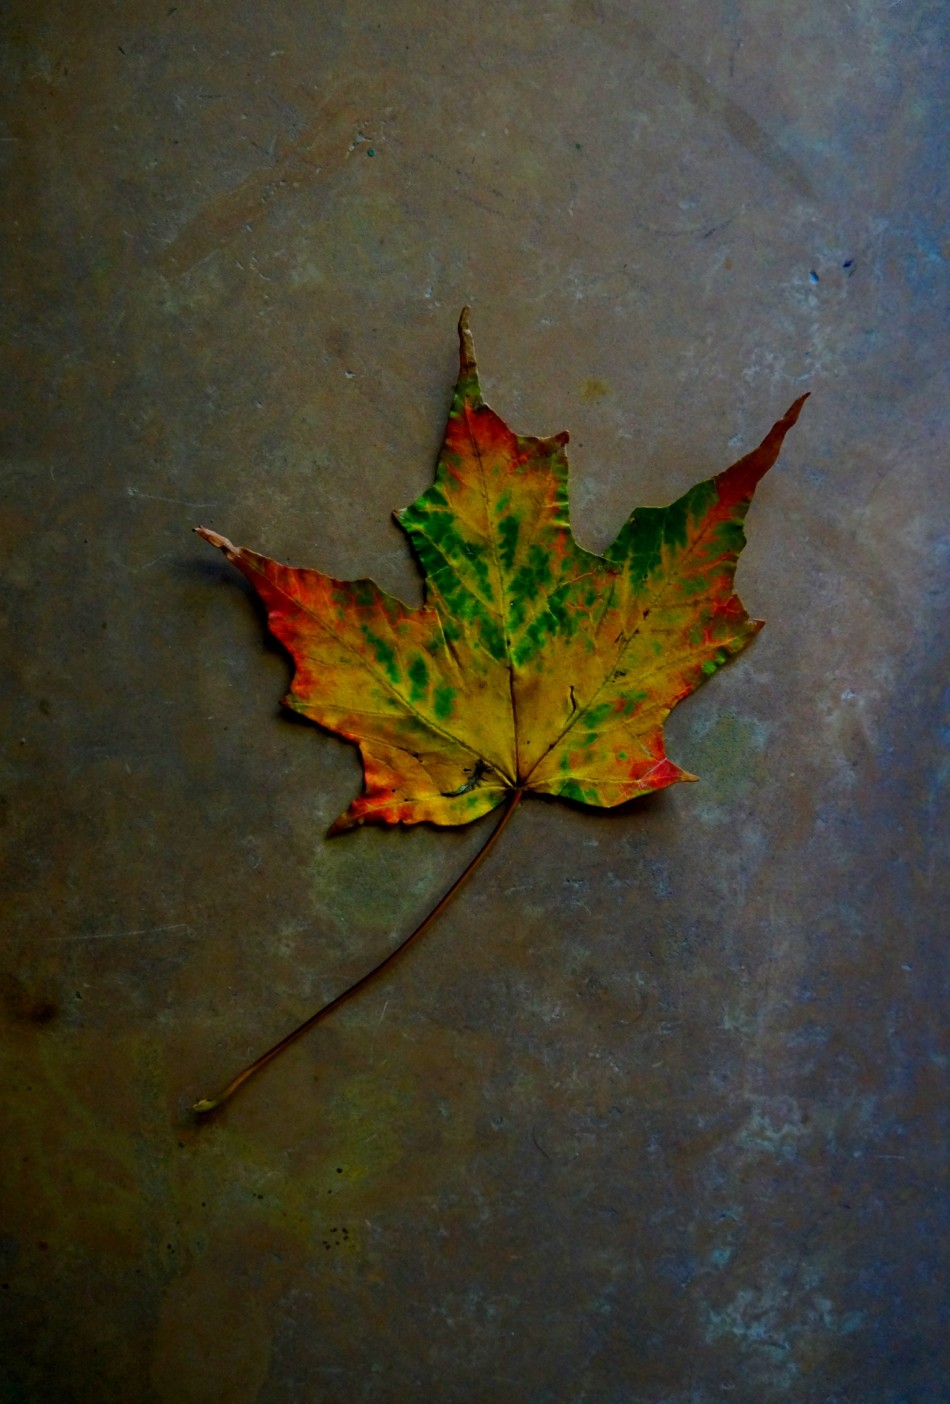 MapleLeaf_withRainbowOfColors_DSC03332_a_1_smlr